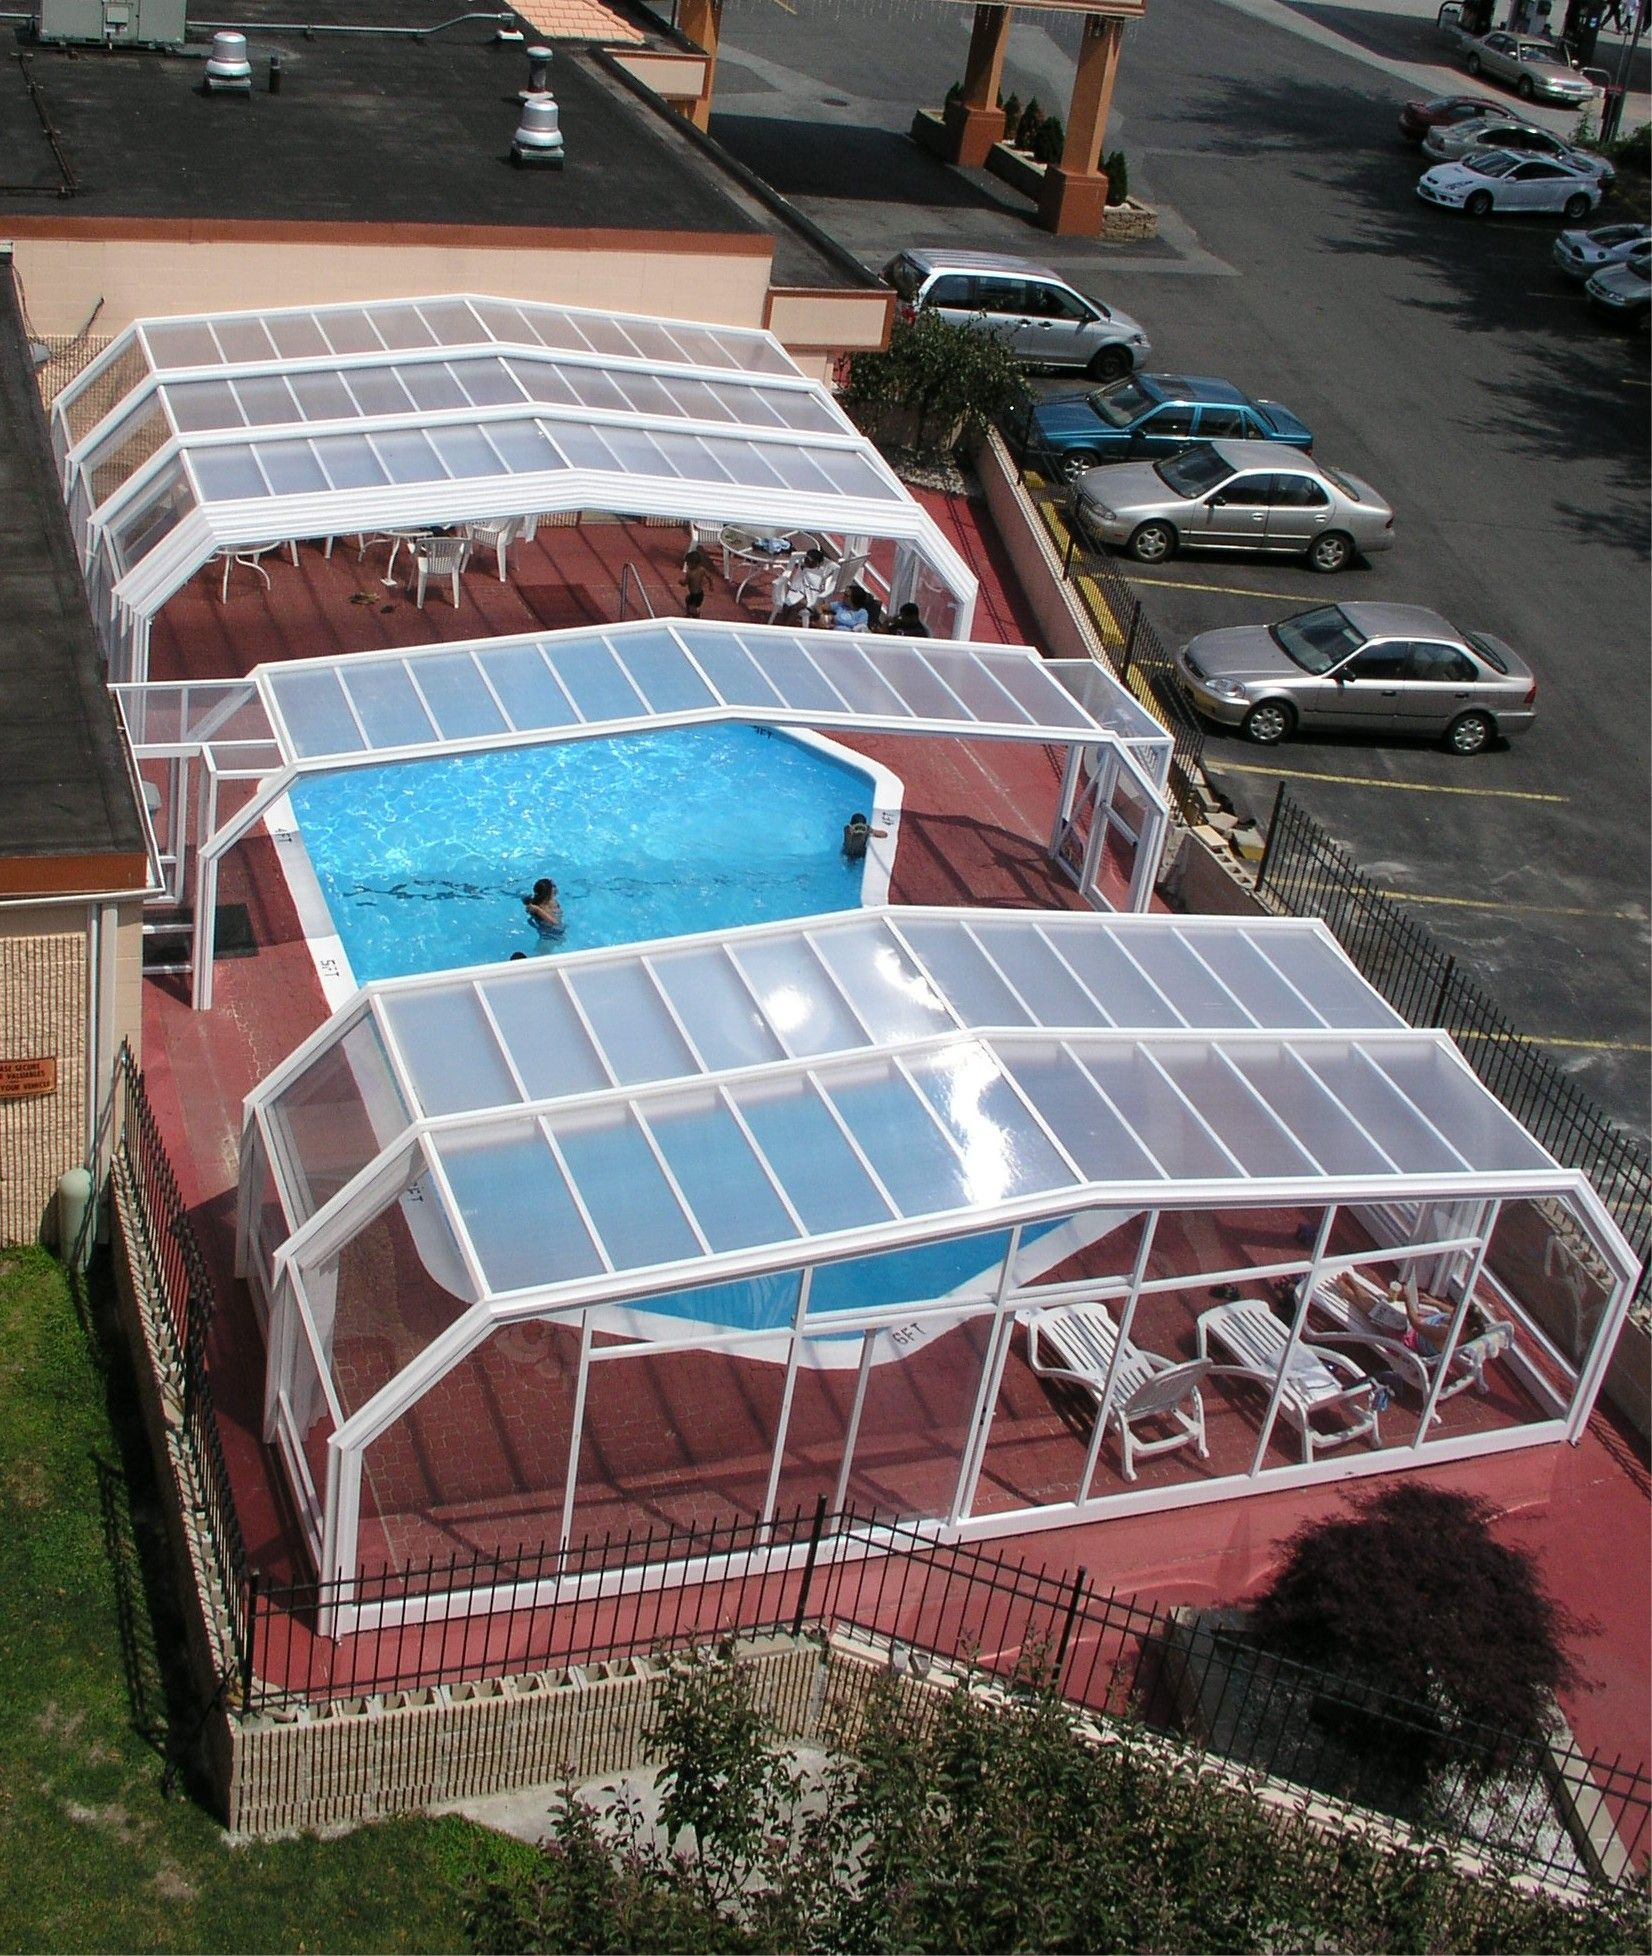 Retractable Roof Manufactured By Roll A Cover Intl Pool Enclosures Swimming Pool Enclosures Indoor Outdoor Pool